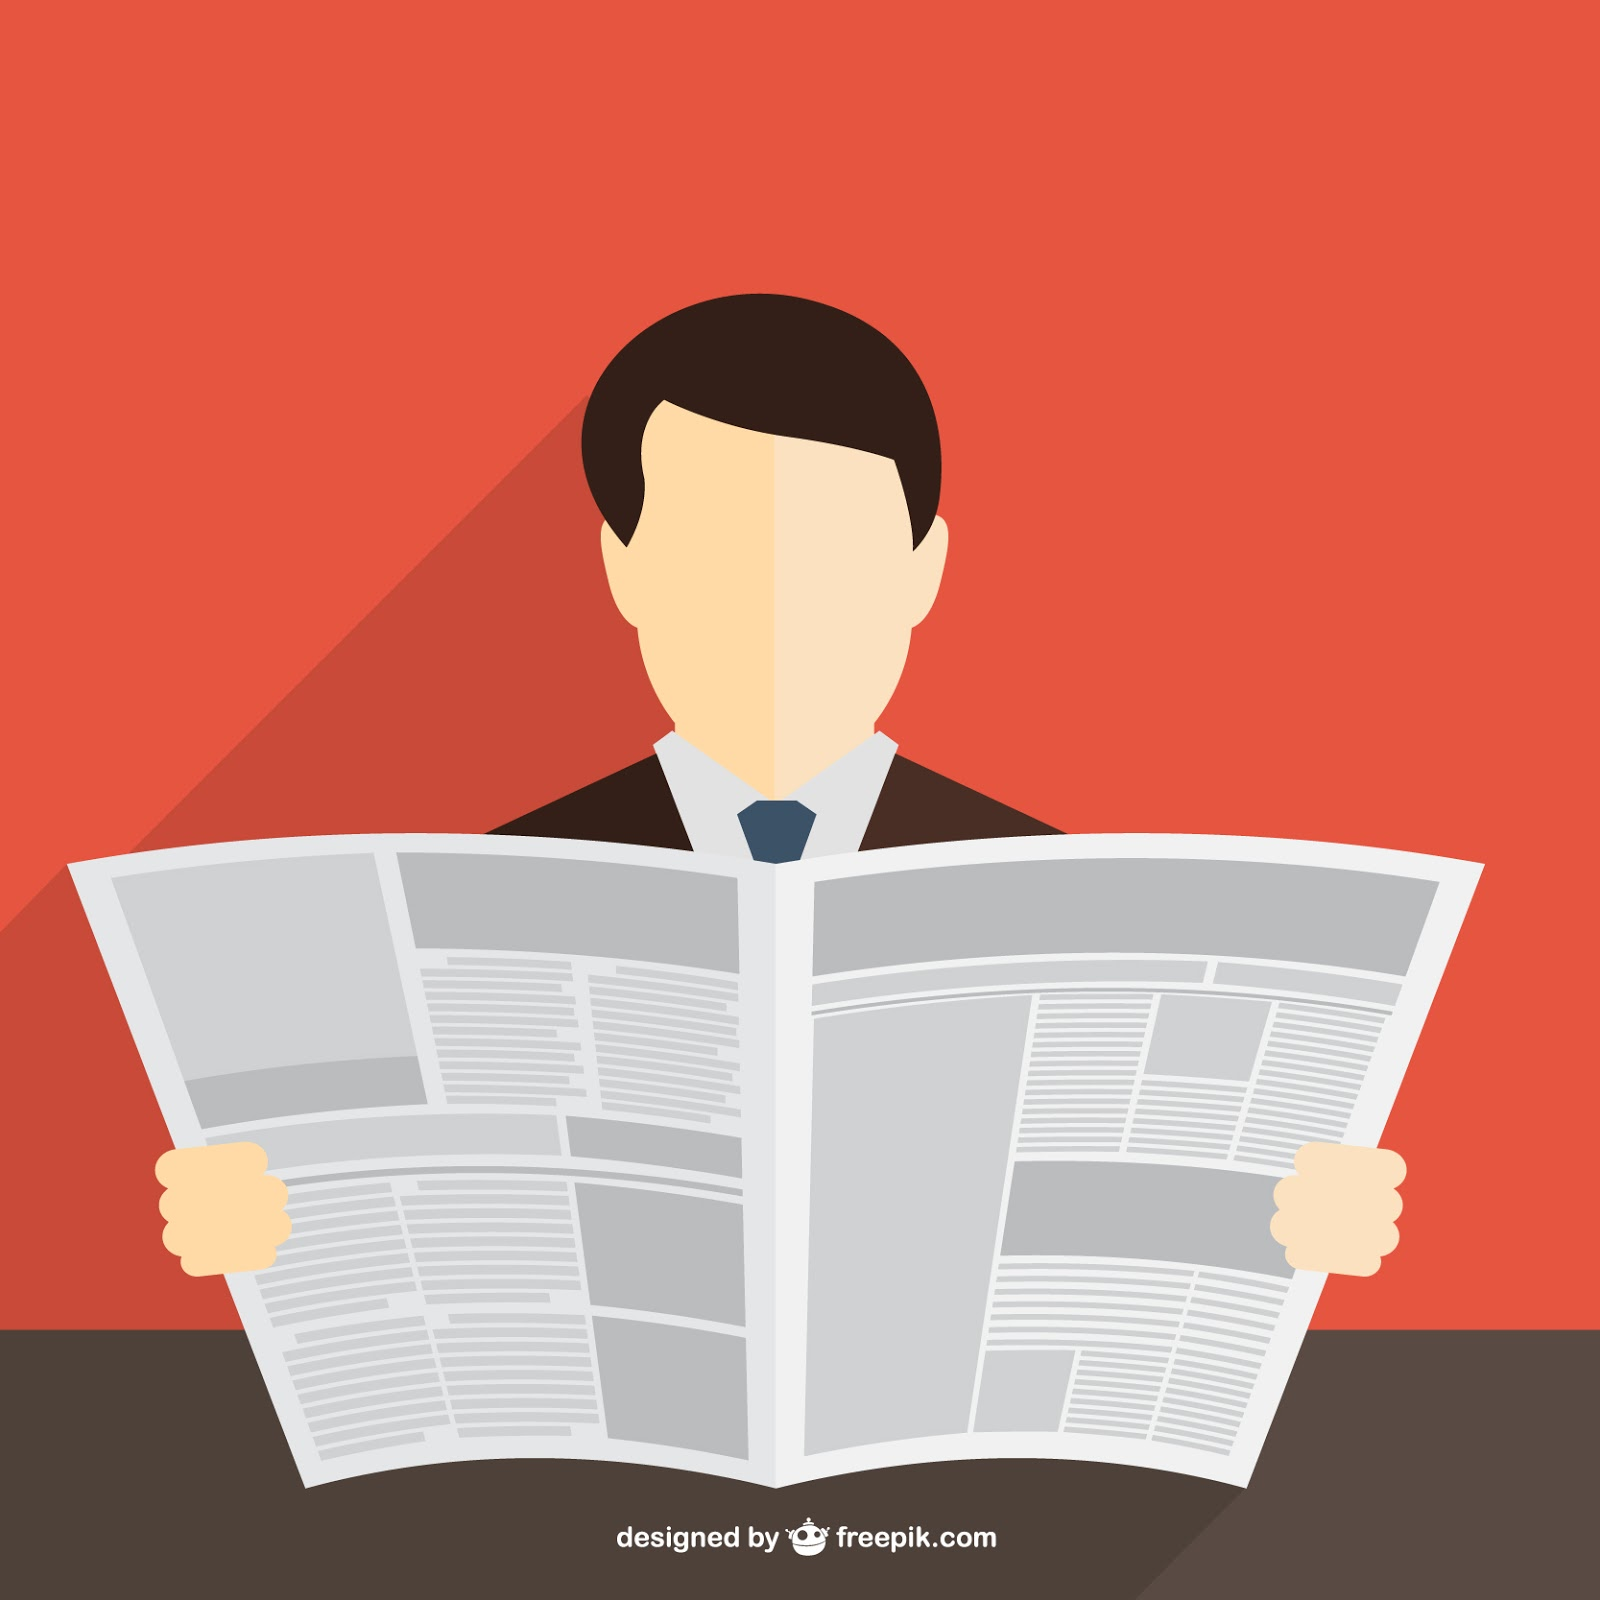 How Journalists, Copywriters & PR Professionals Can Carve a Content Marketing Career